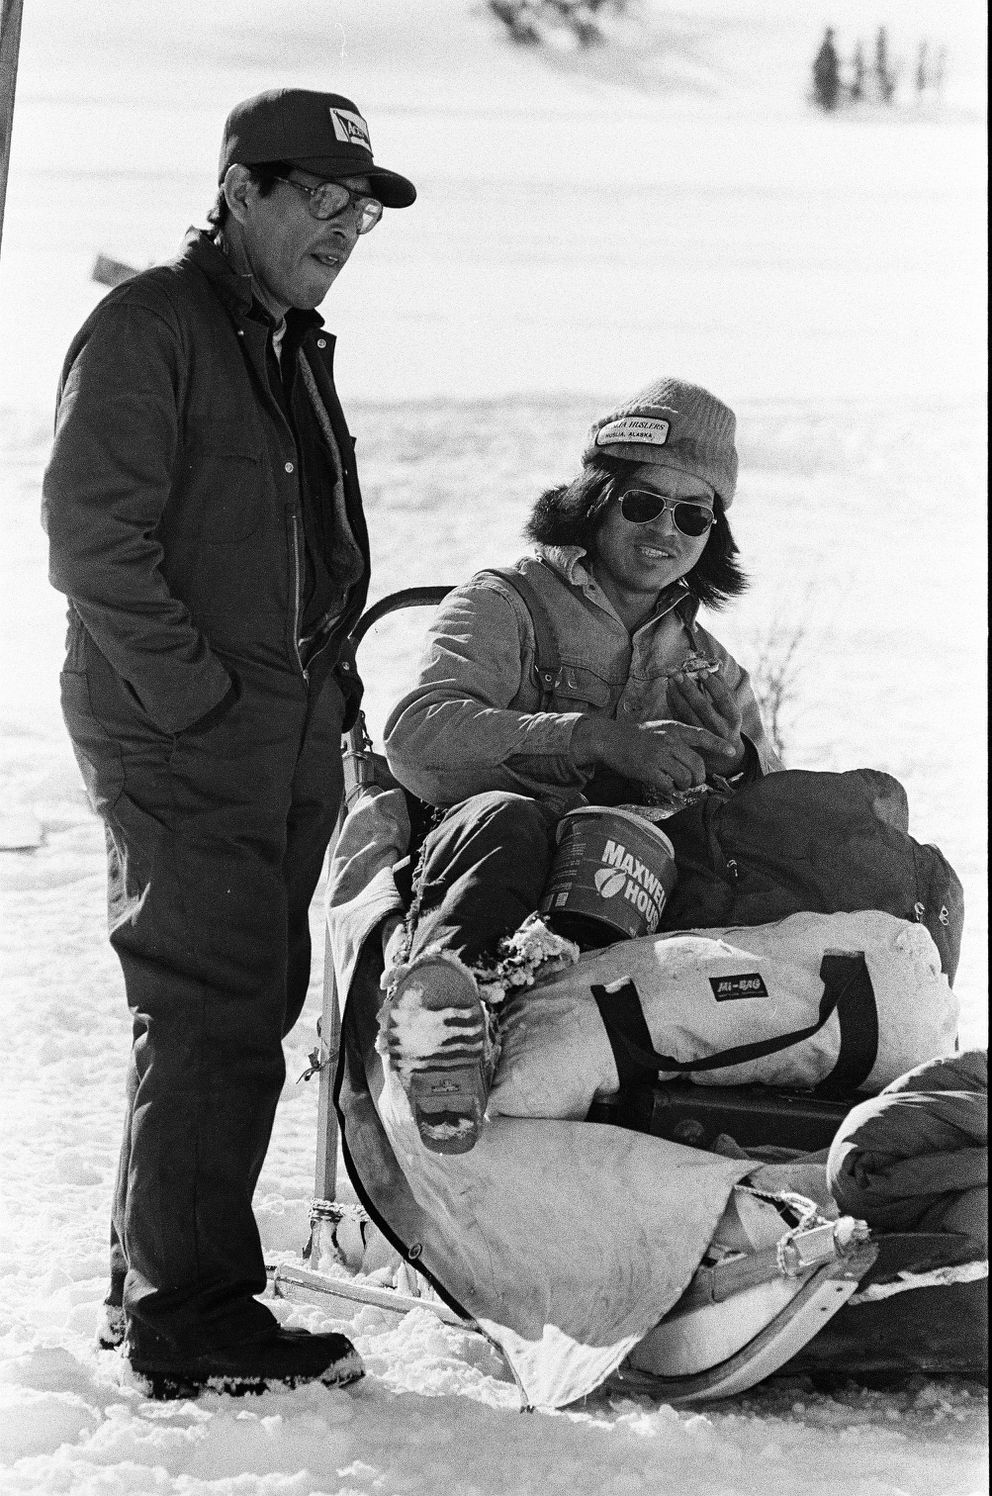 Emmitt Peters and Gary Attla visit at the Rainy Pass checkpoint during the 1981 Iditarod Trail Sled Dog Race on March 9, 1981. (Marc Olson / ADN archive)